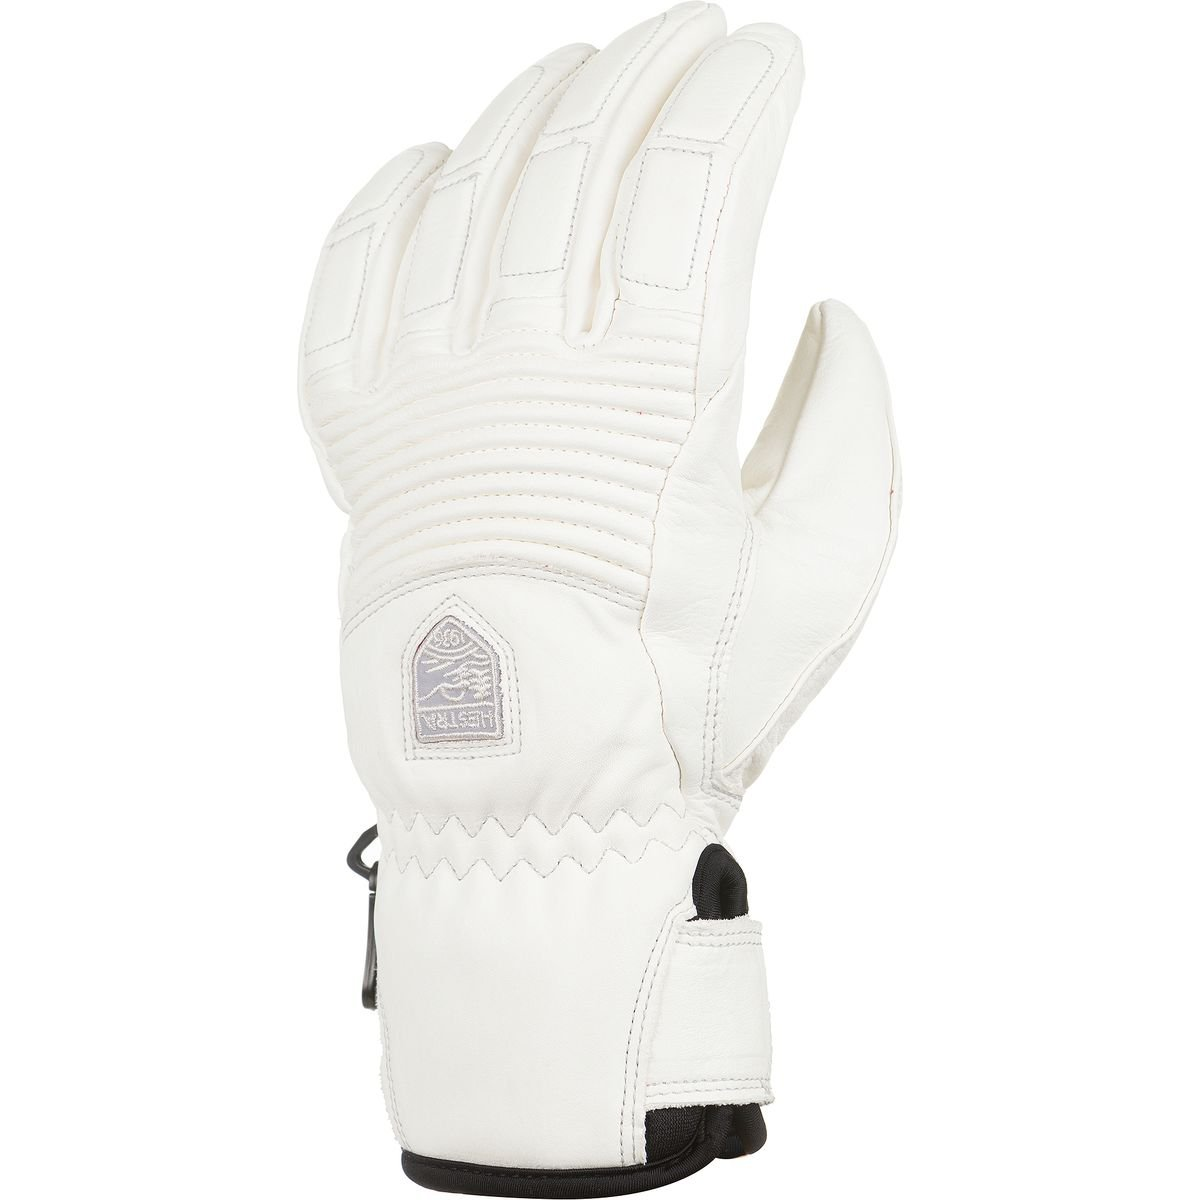 Hestra Gloves 30210 Women's Leather Fall Line, Offwhite/Offwhite - 6